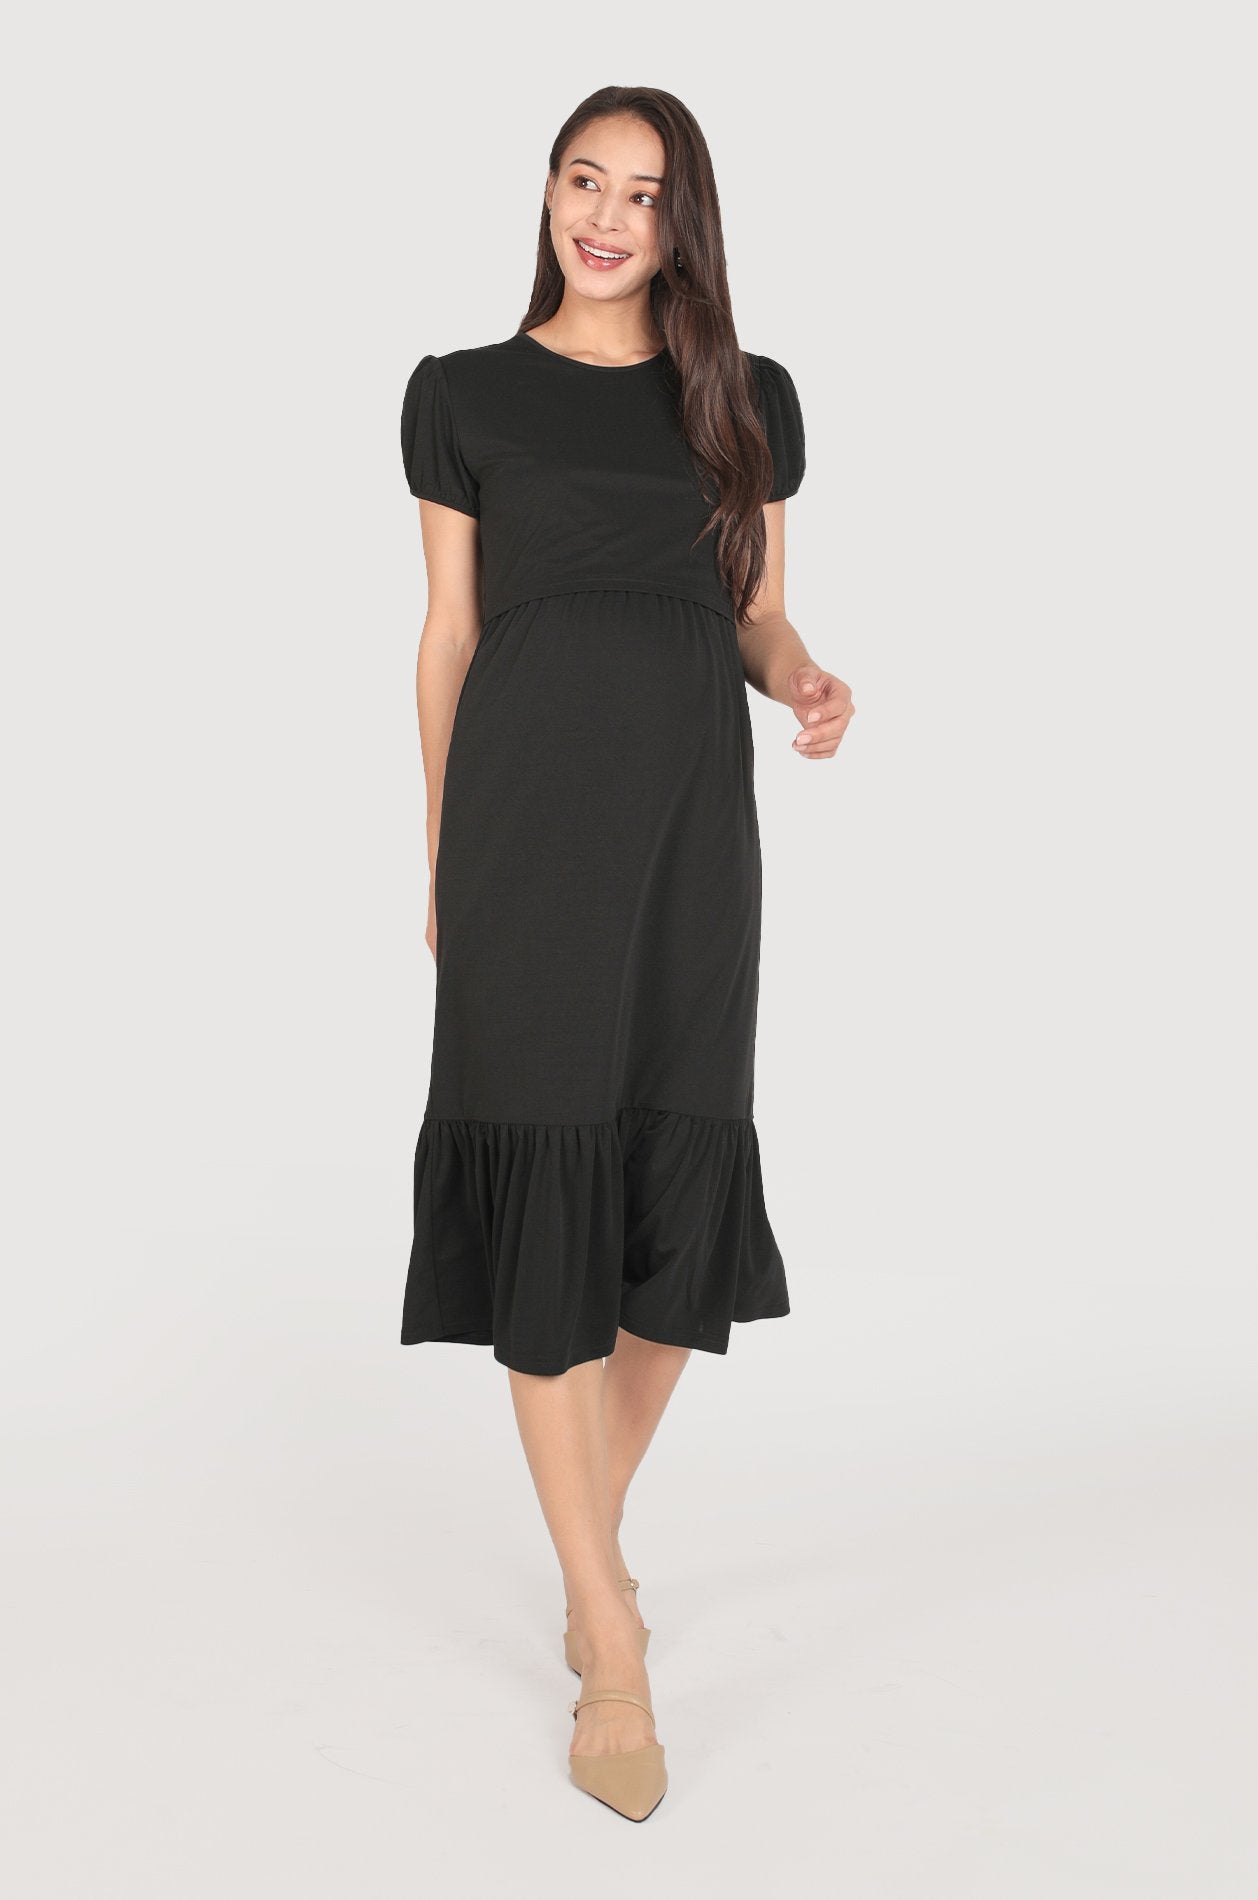 Laura Romantic Lace Nursing Dress  by Jump Eat Cry - Maternity and nursing wear